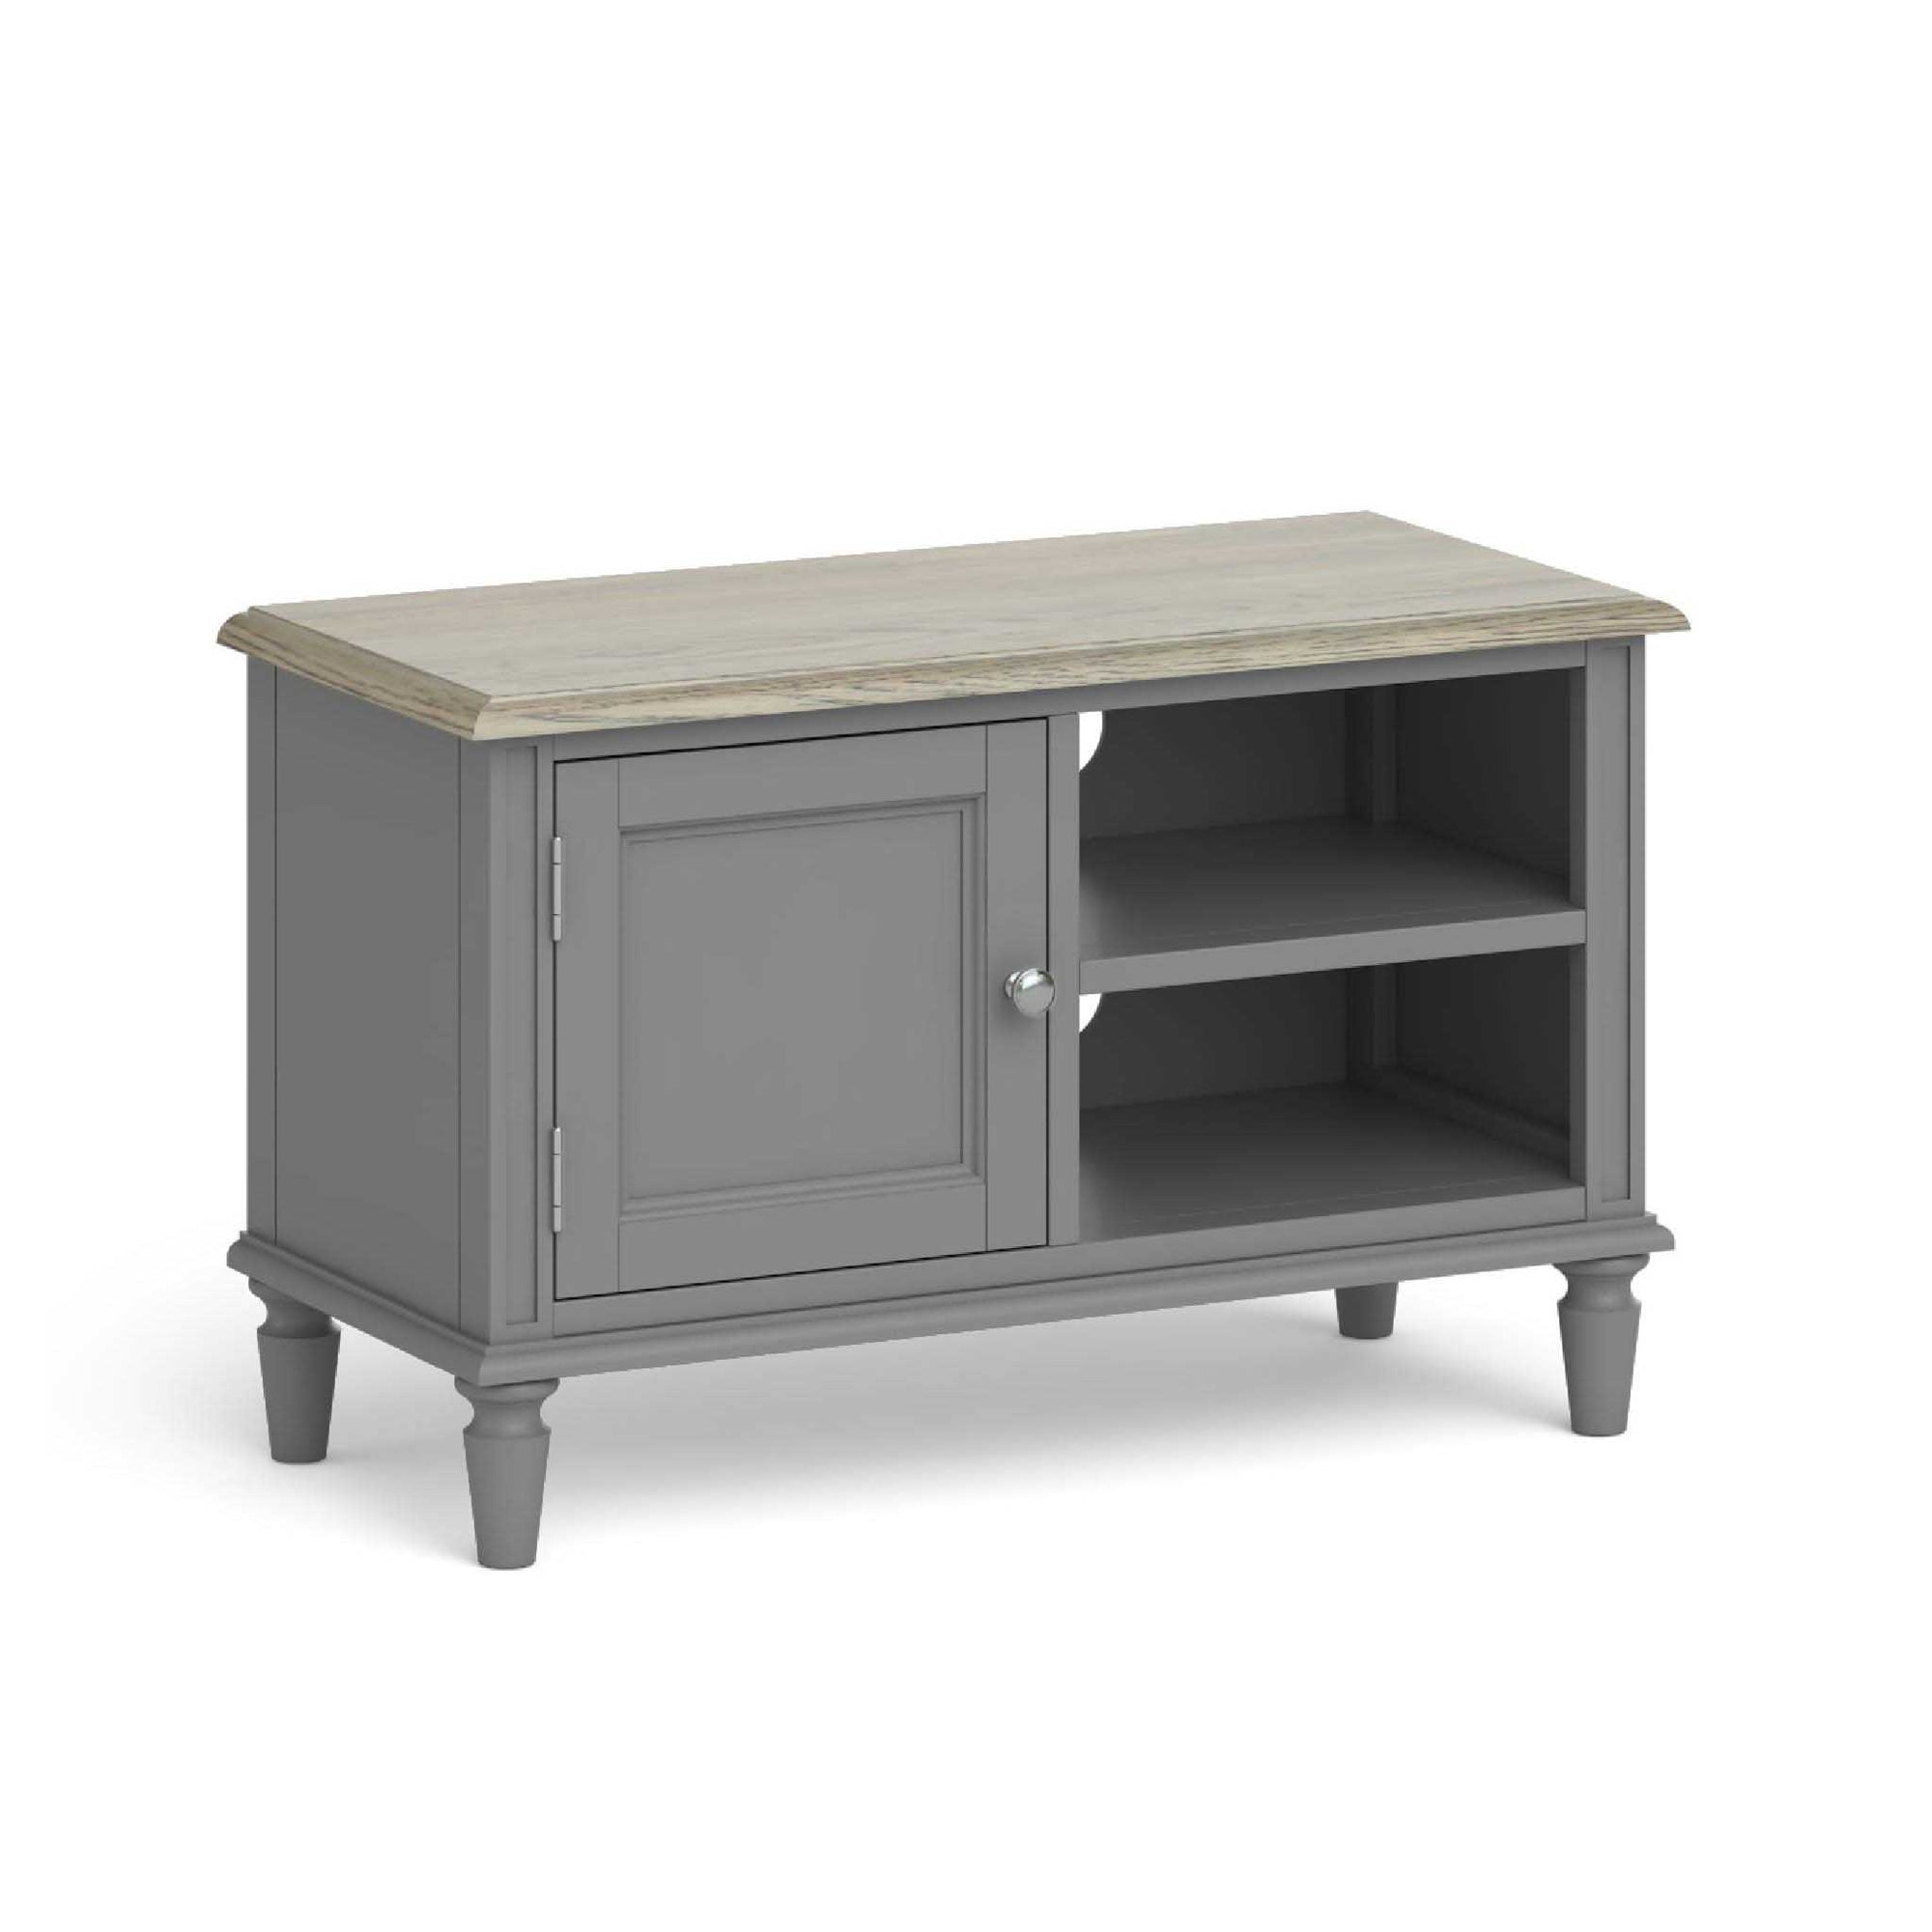 The Mulsanne Grey French Style Small TV Unit with Cupboard from Roseland Furniture